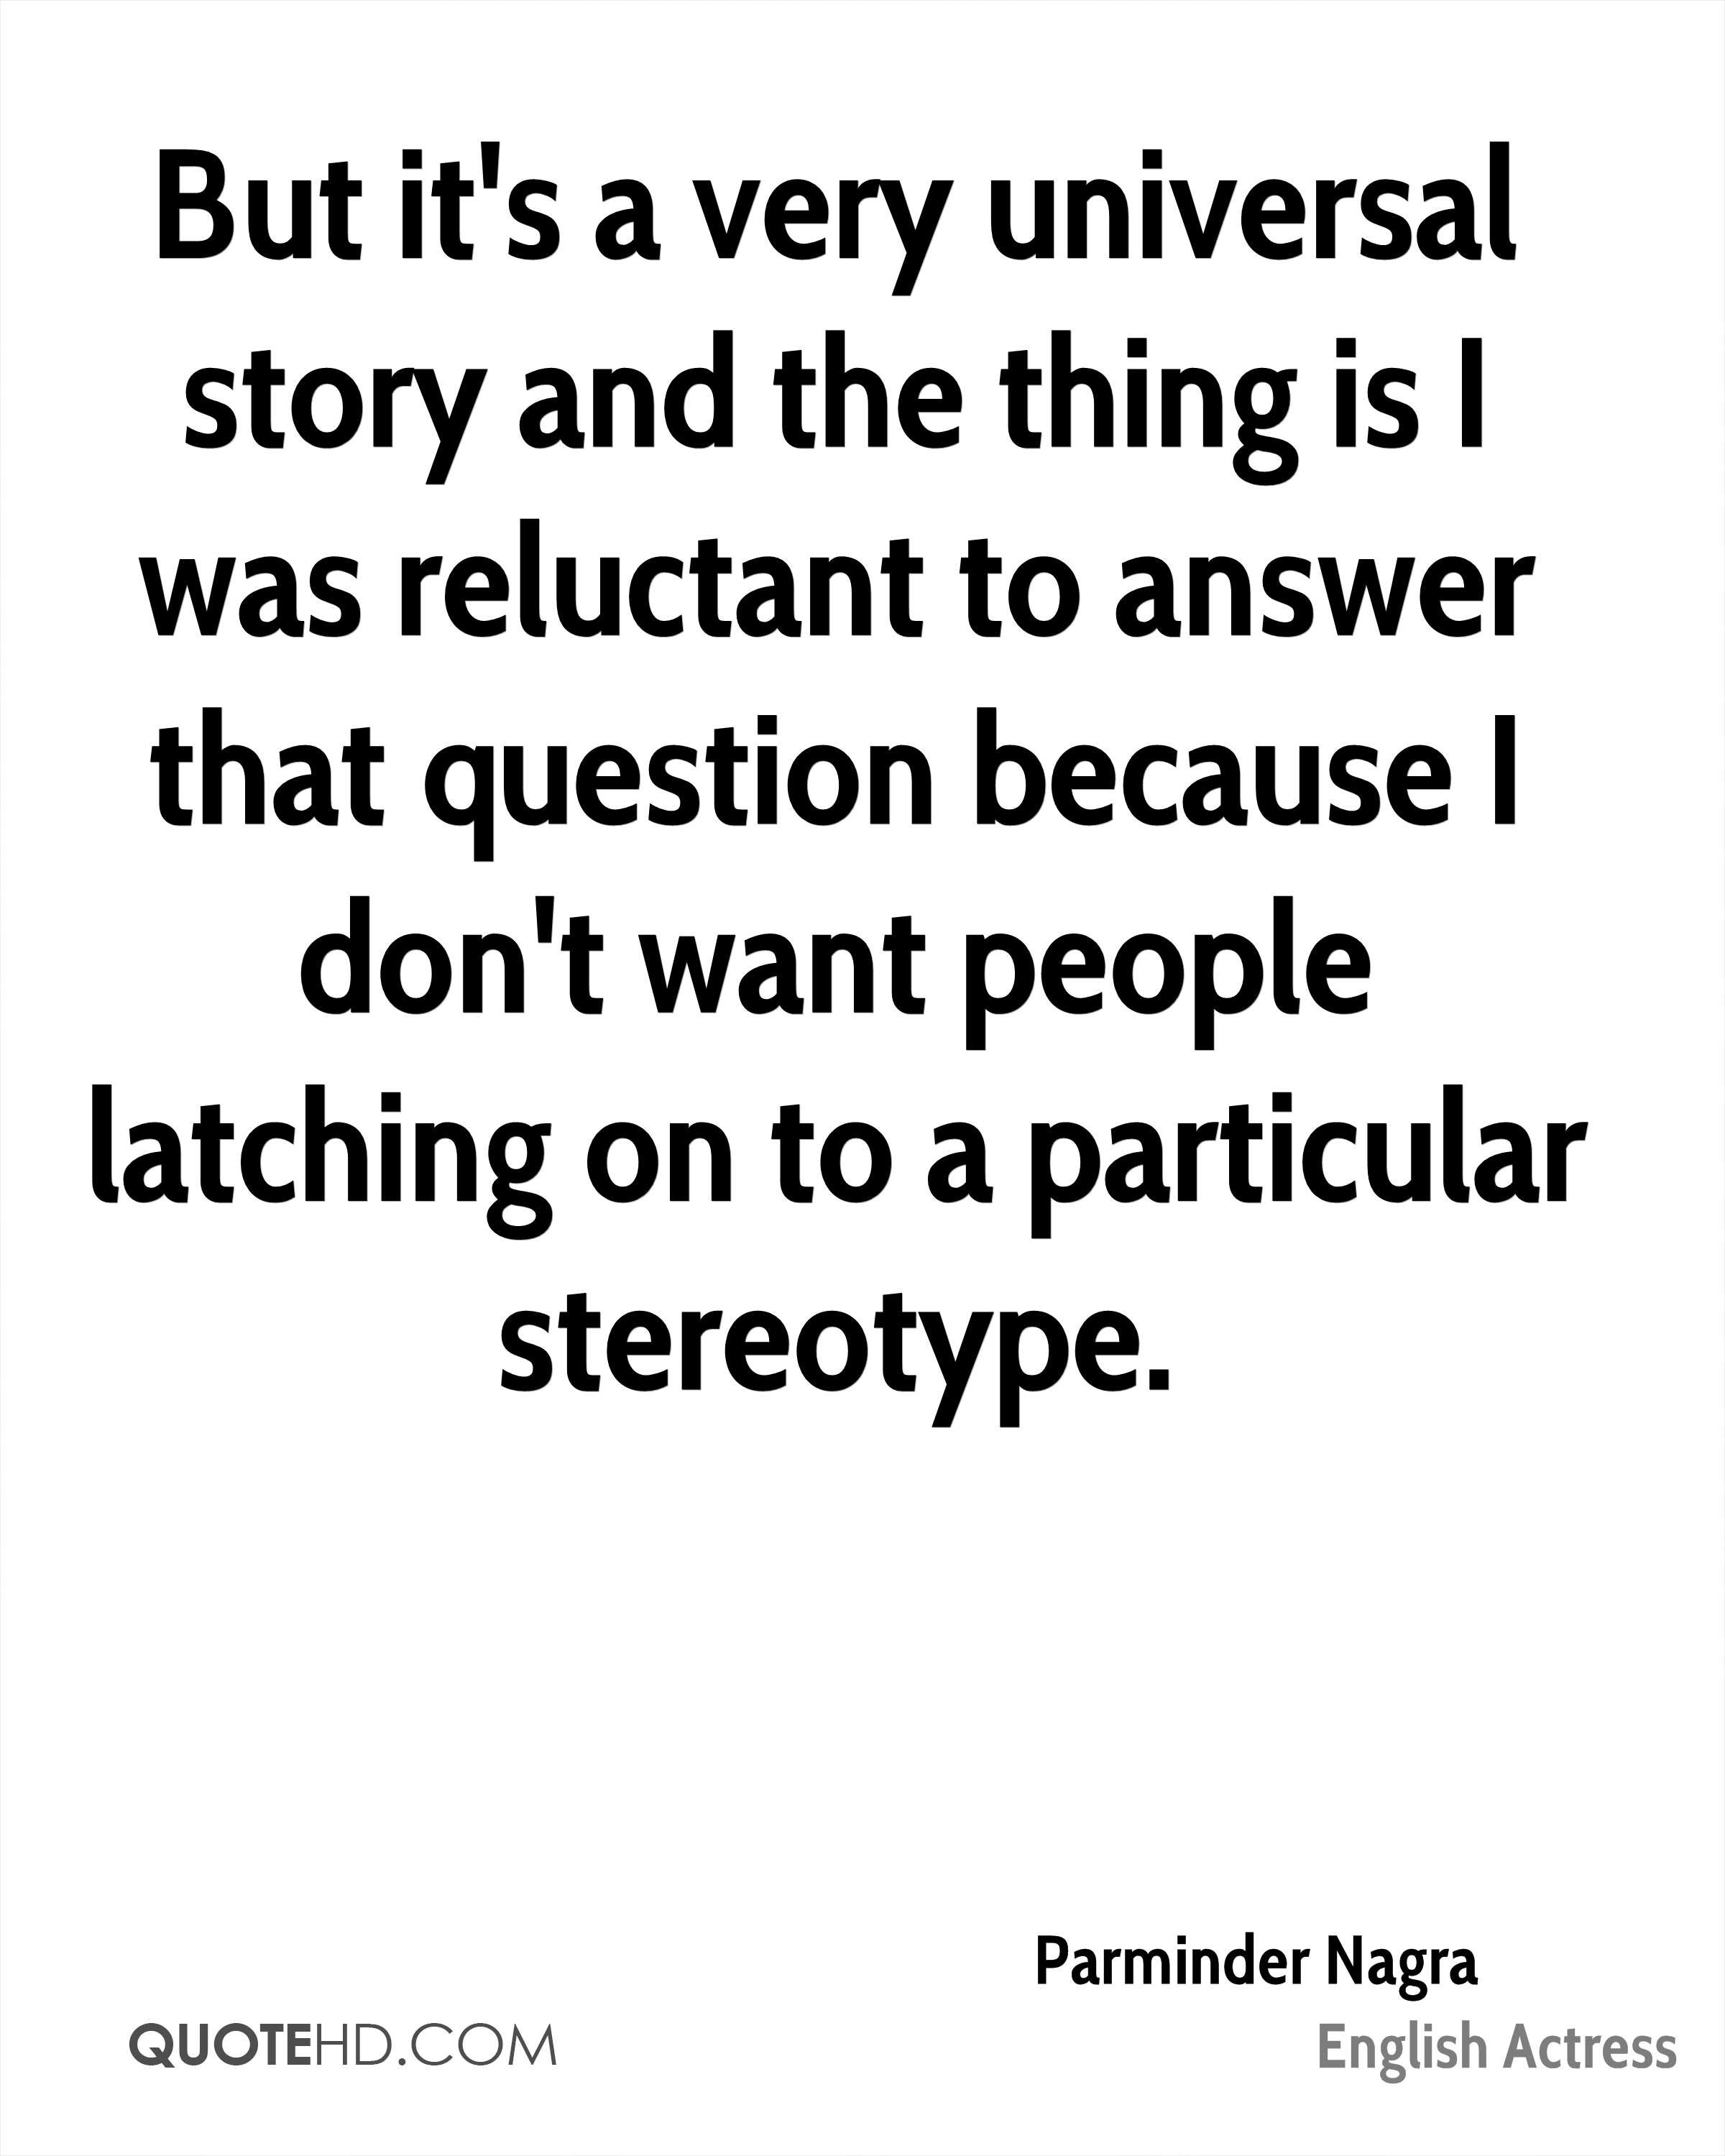 But it's a very universal story and the thing is I was reluctant to answer that question because I don't want people latching on to a particular stereotype.